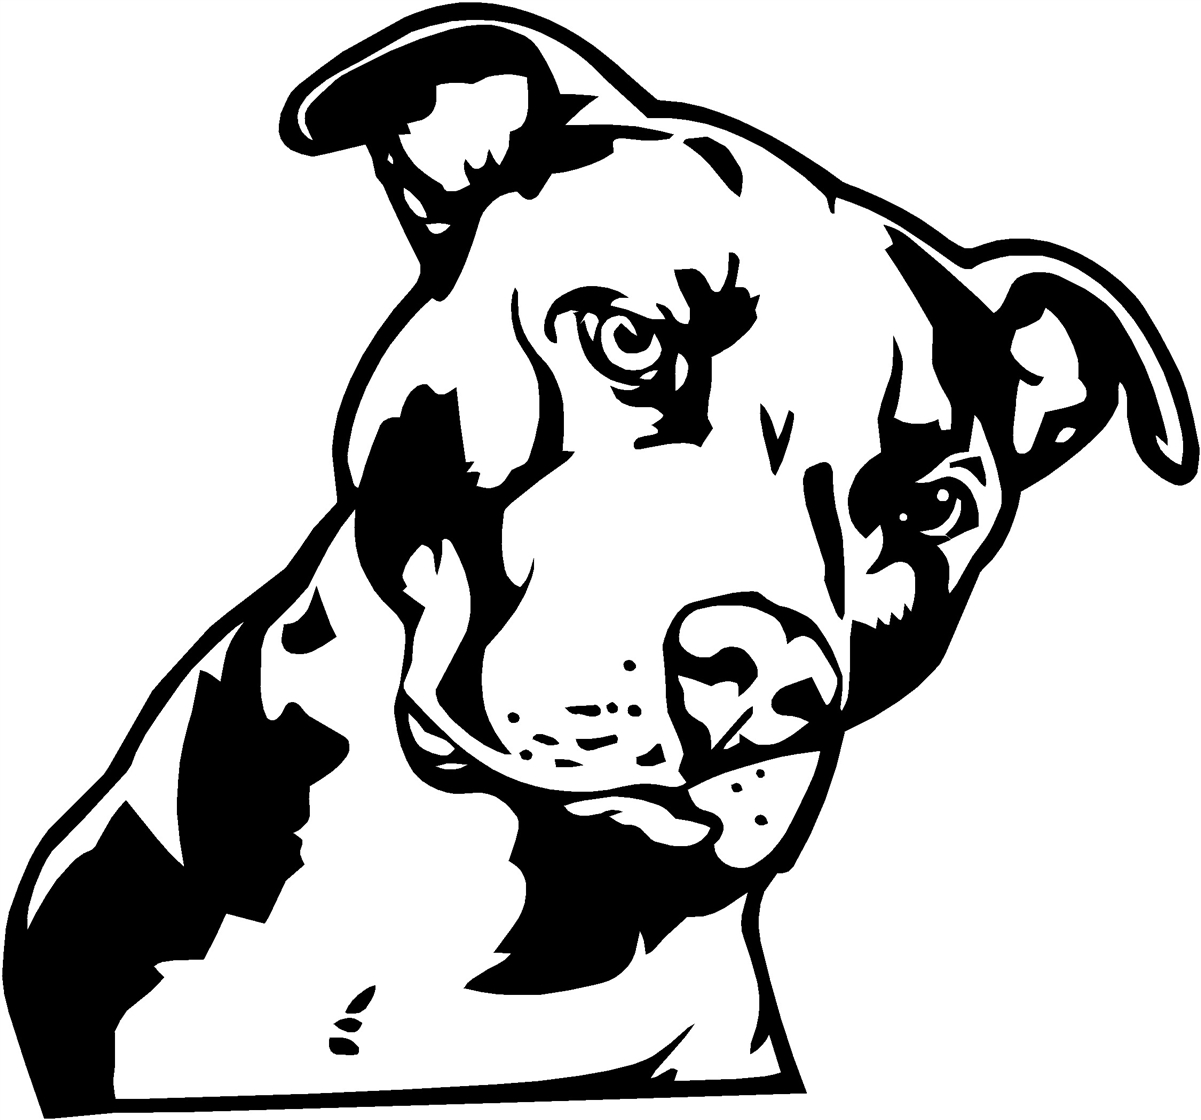 Free Pitbull Silhouette Vector, Download Free Clip Art, Free.